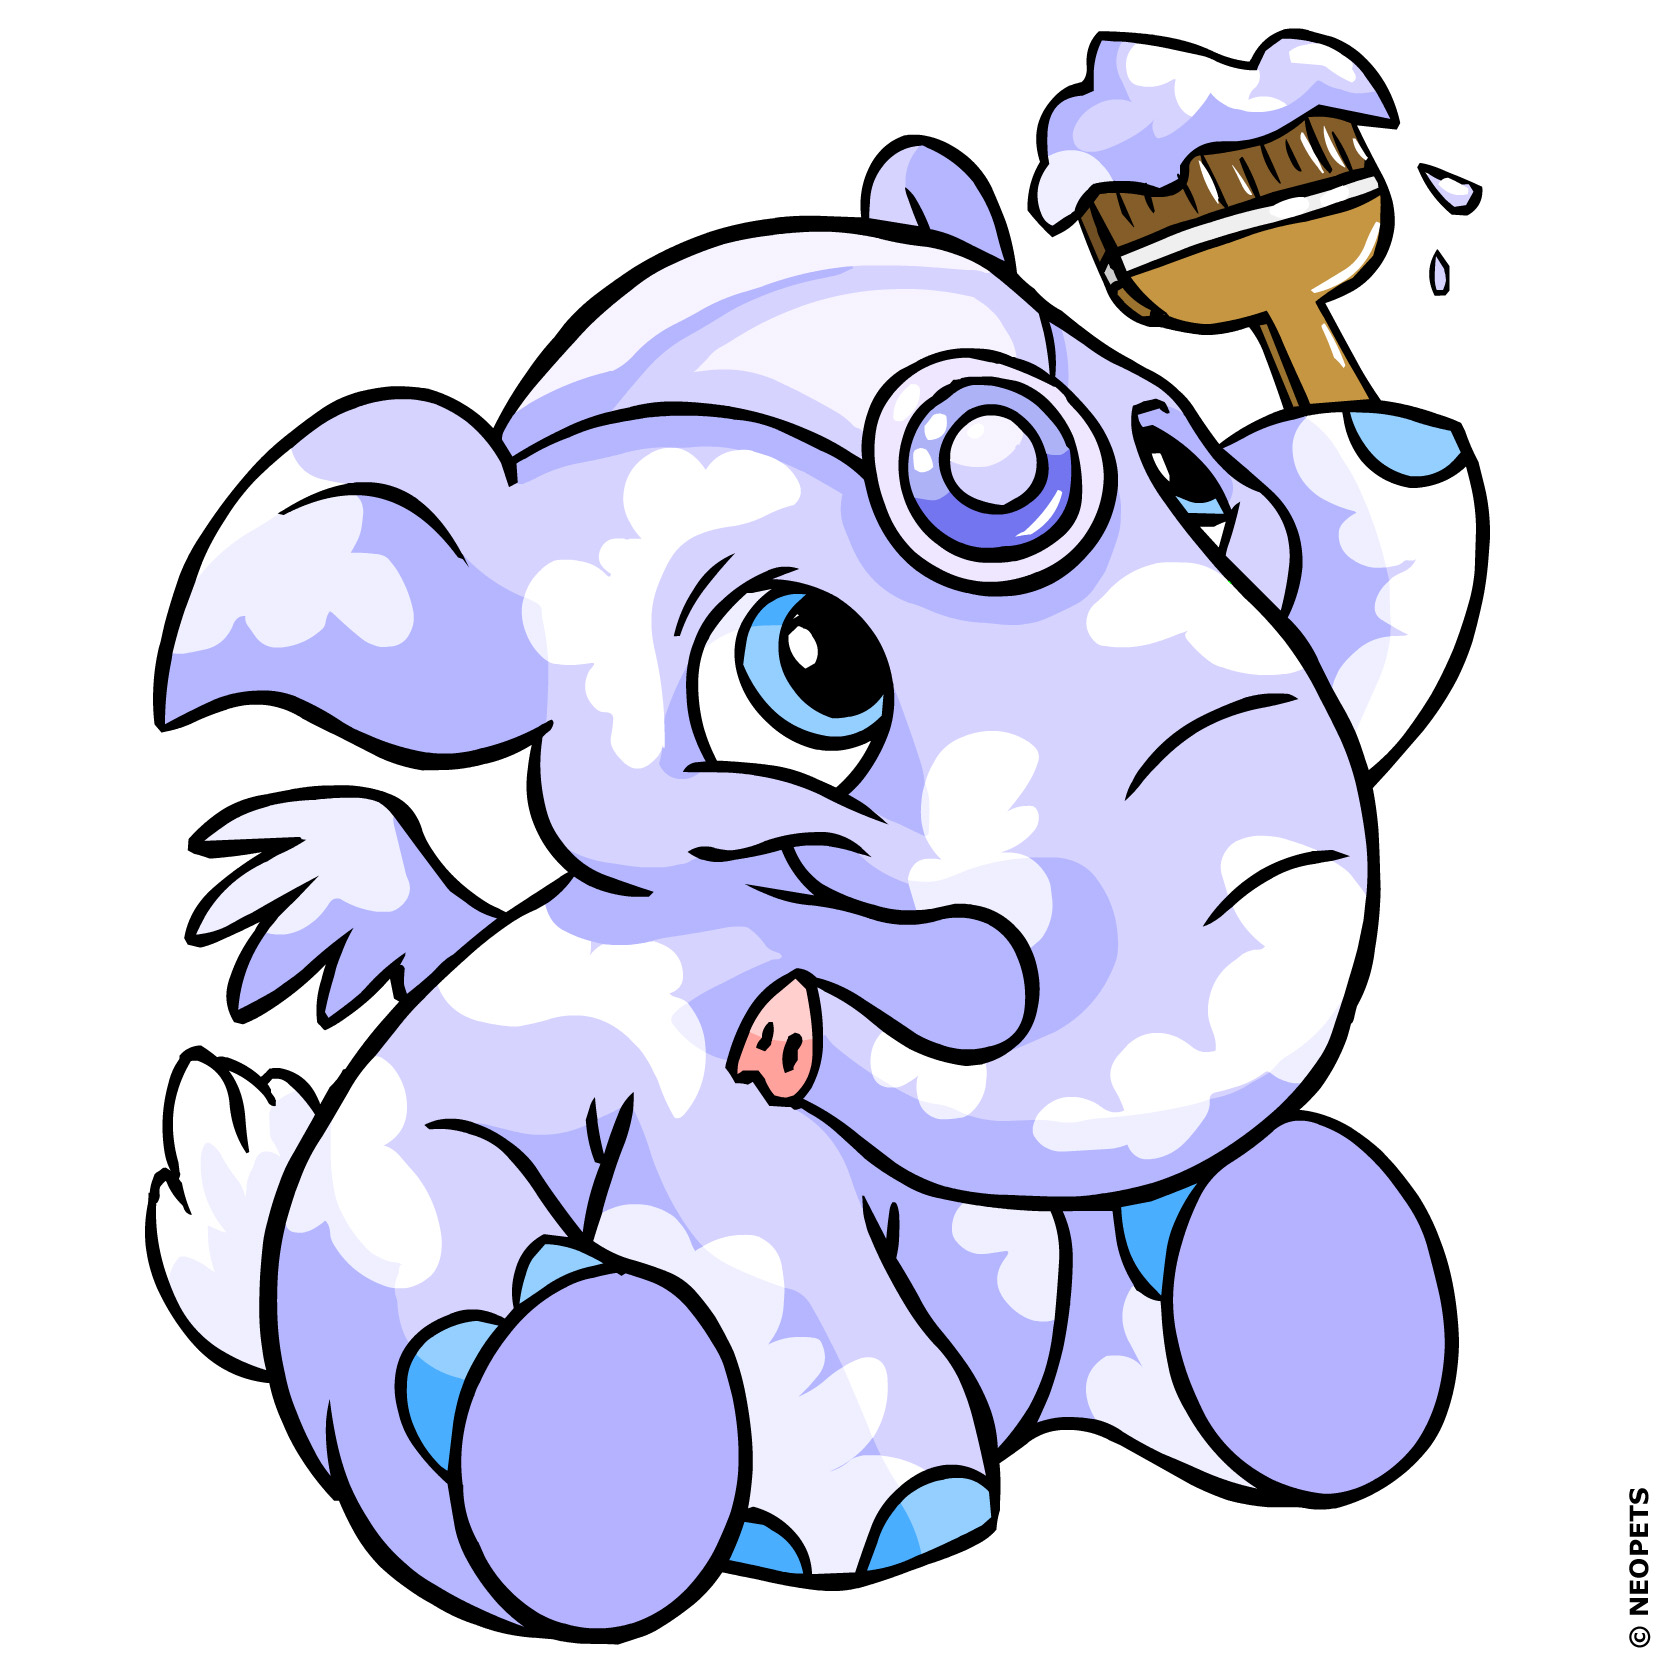 http://images.neopets.com/press/elephante_4.jpg